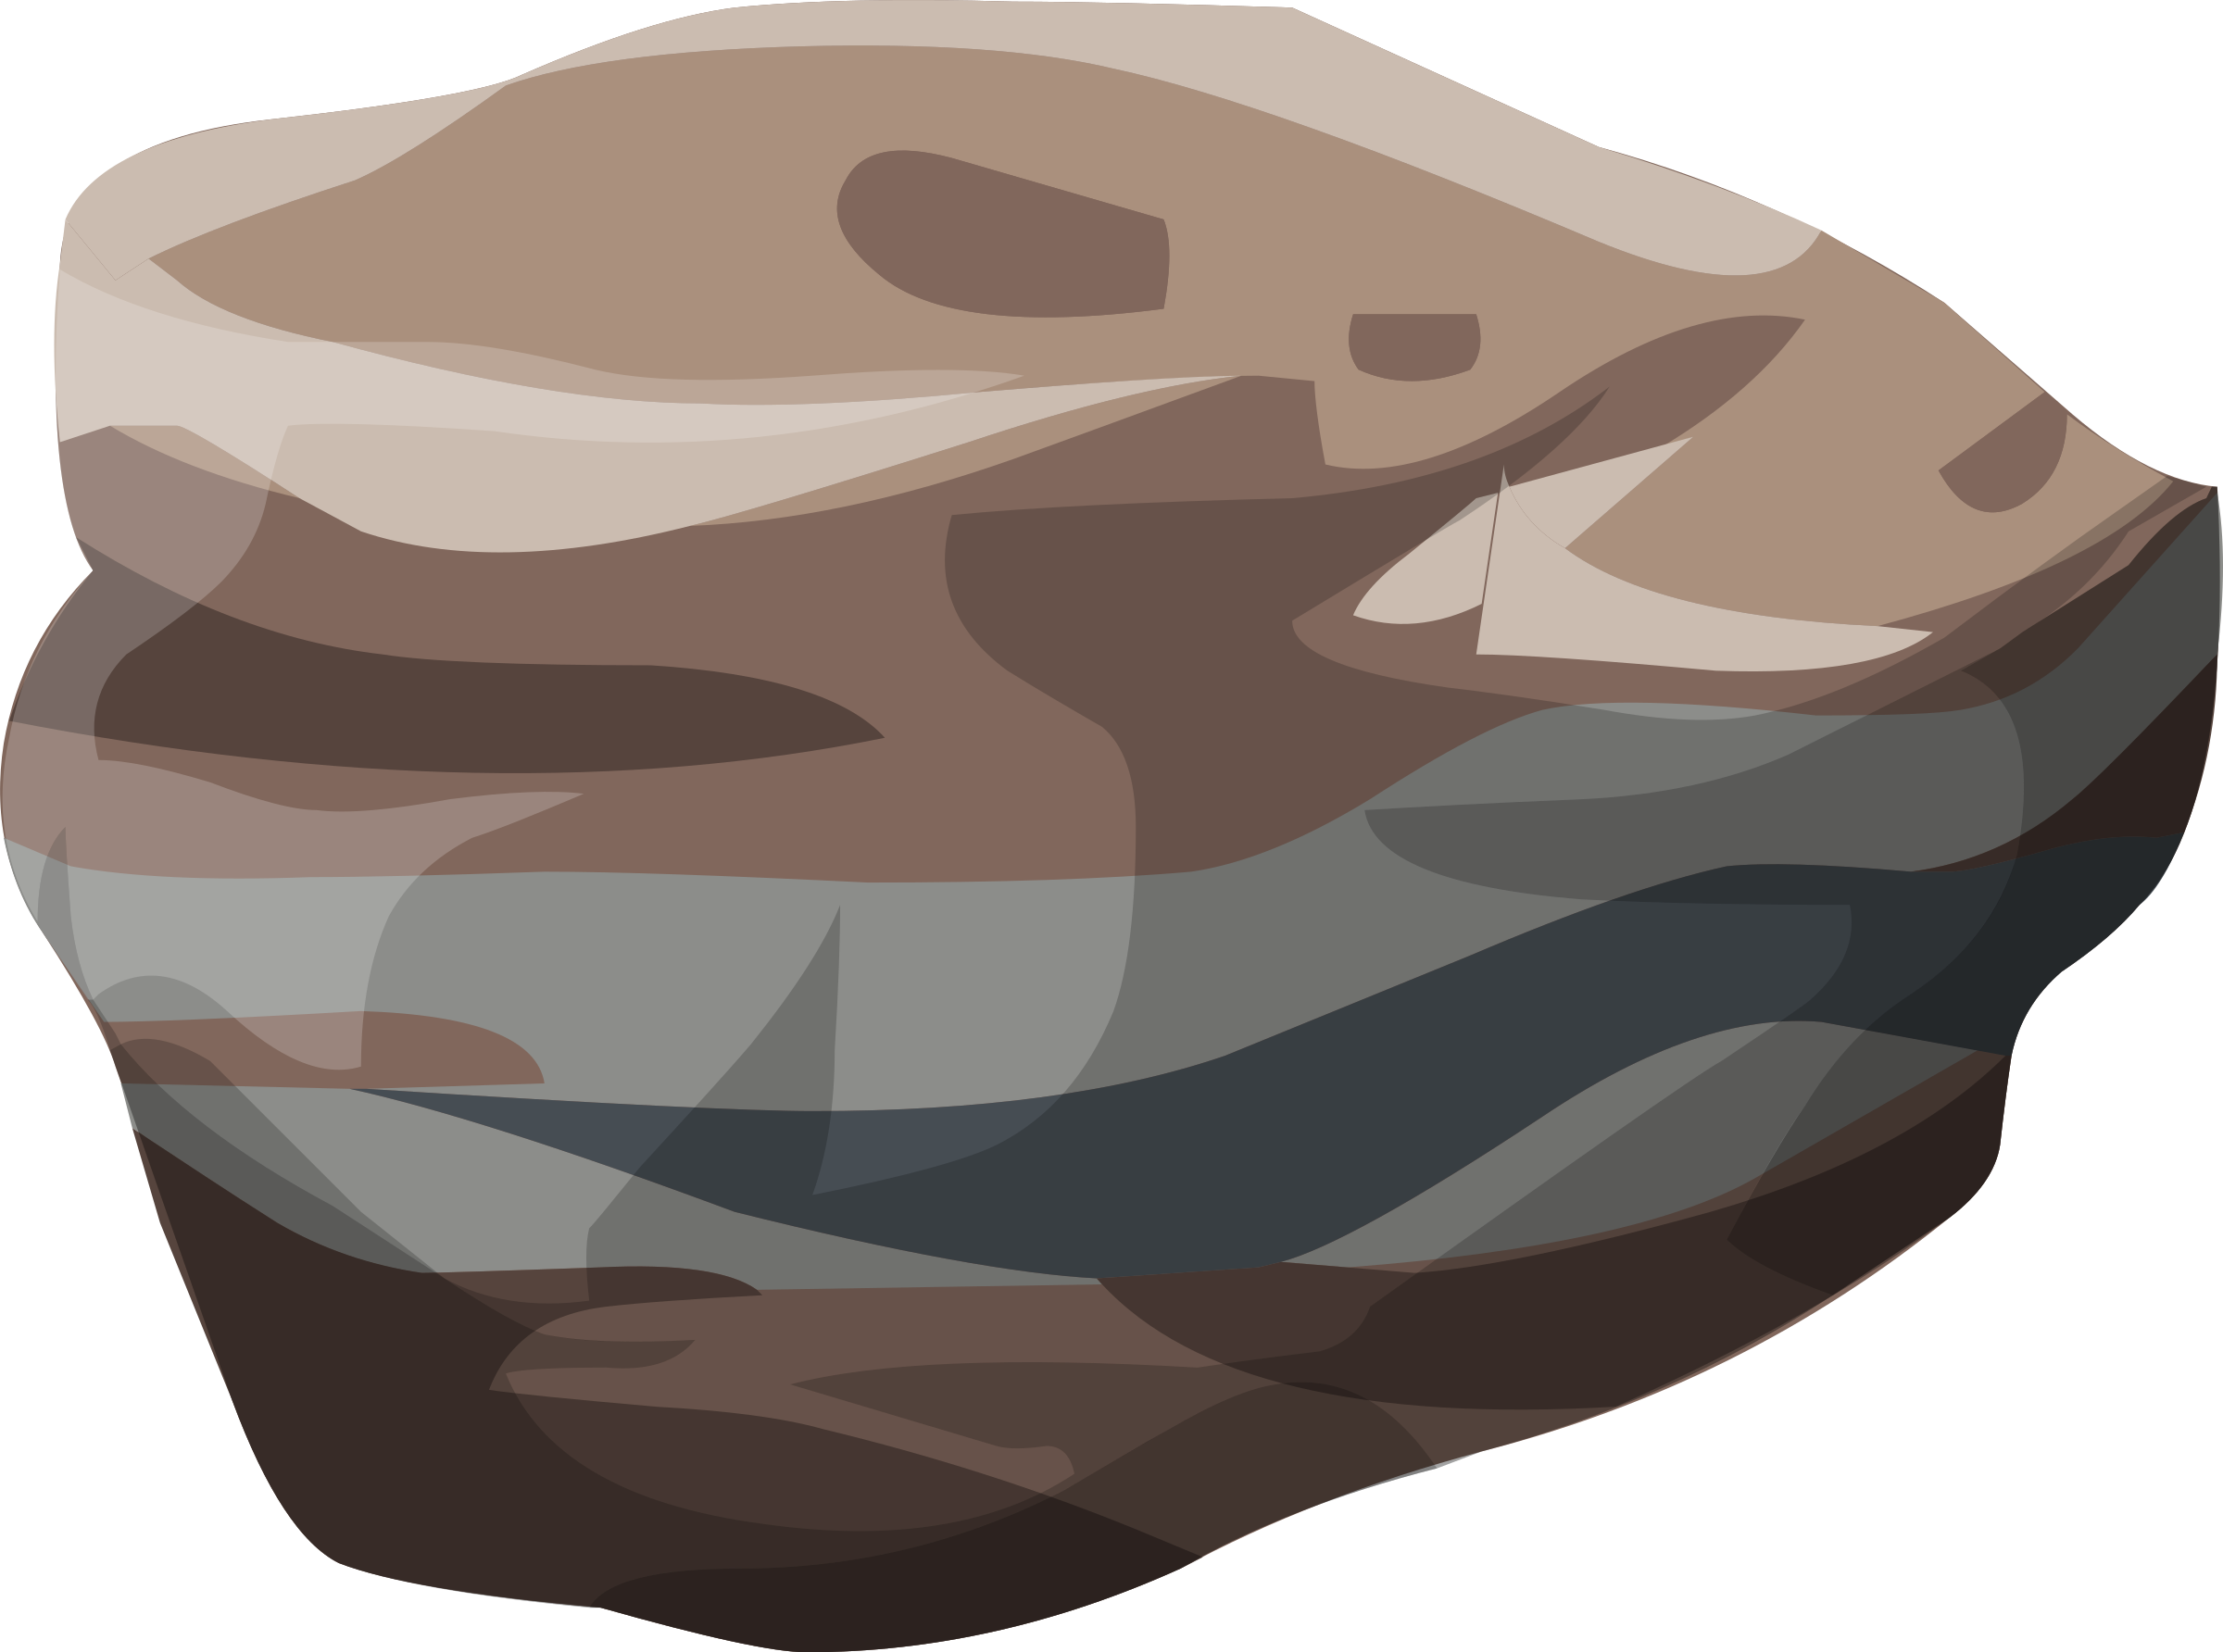 collection of sedimentary. Clipart rock sediment